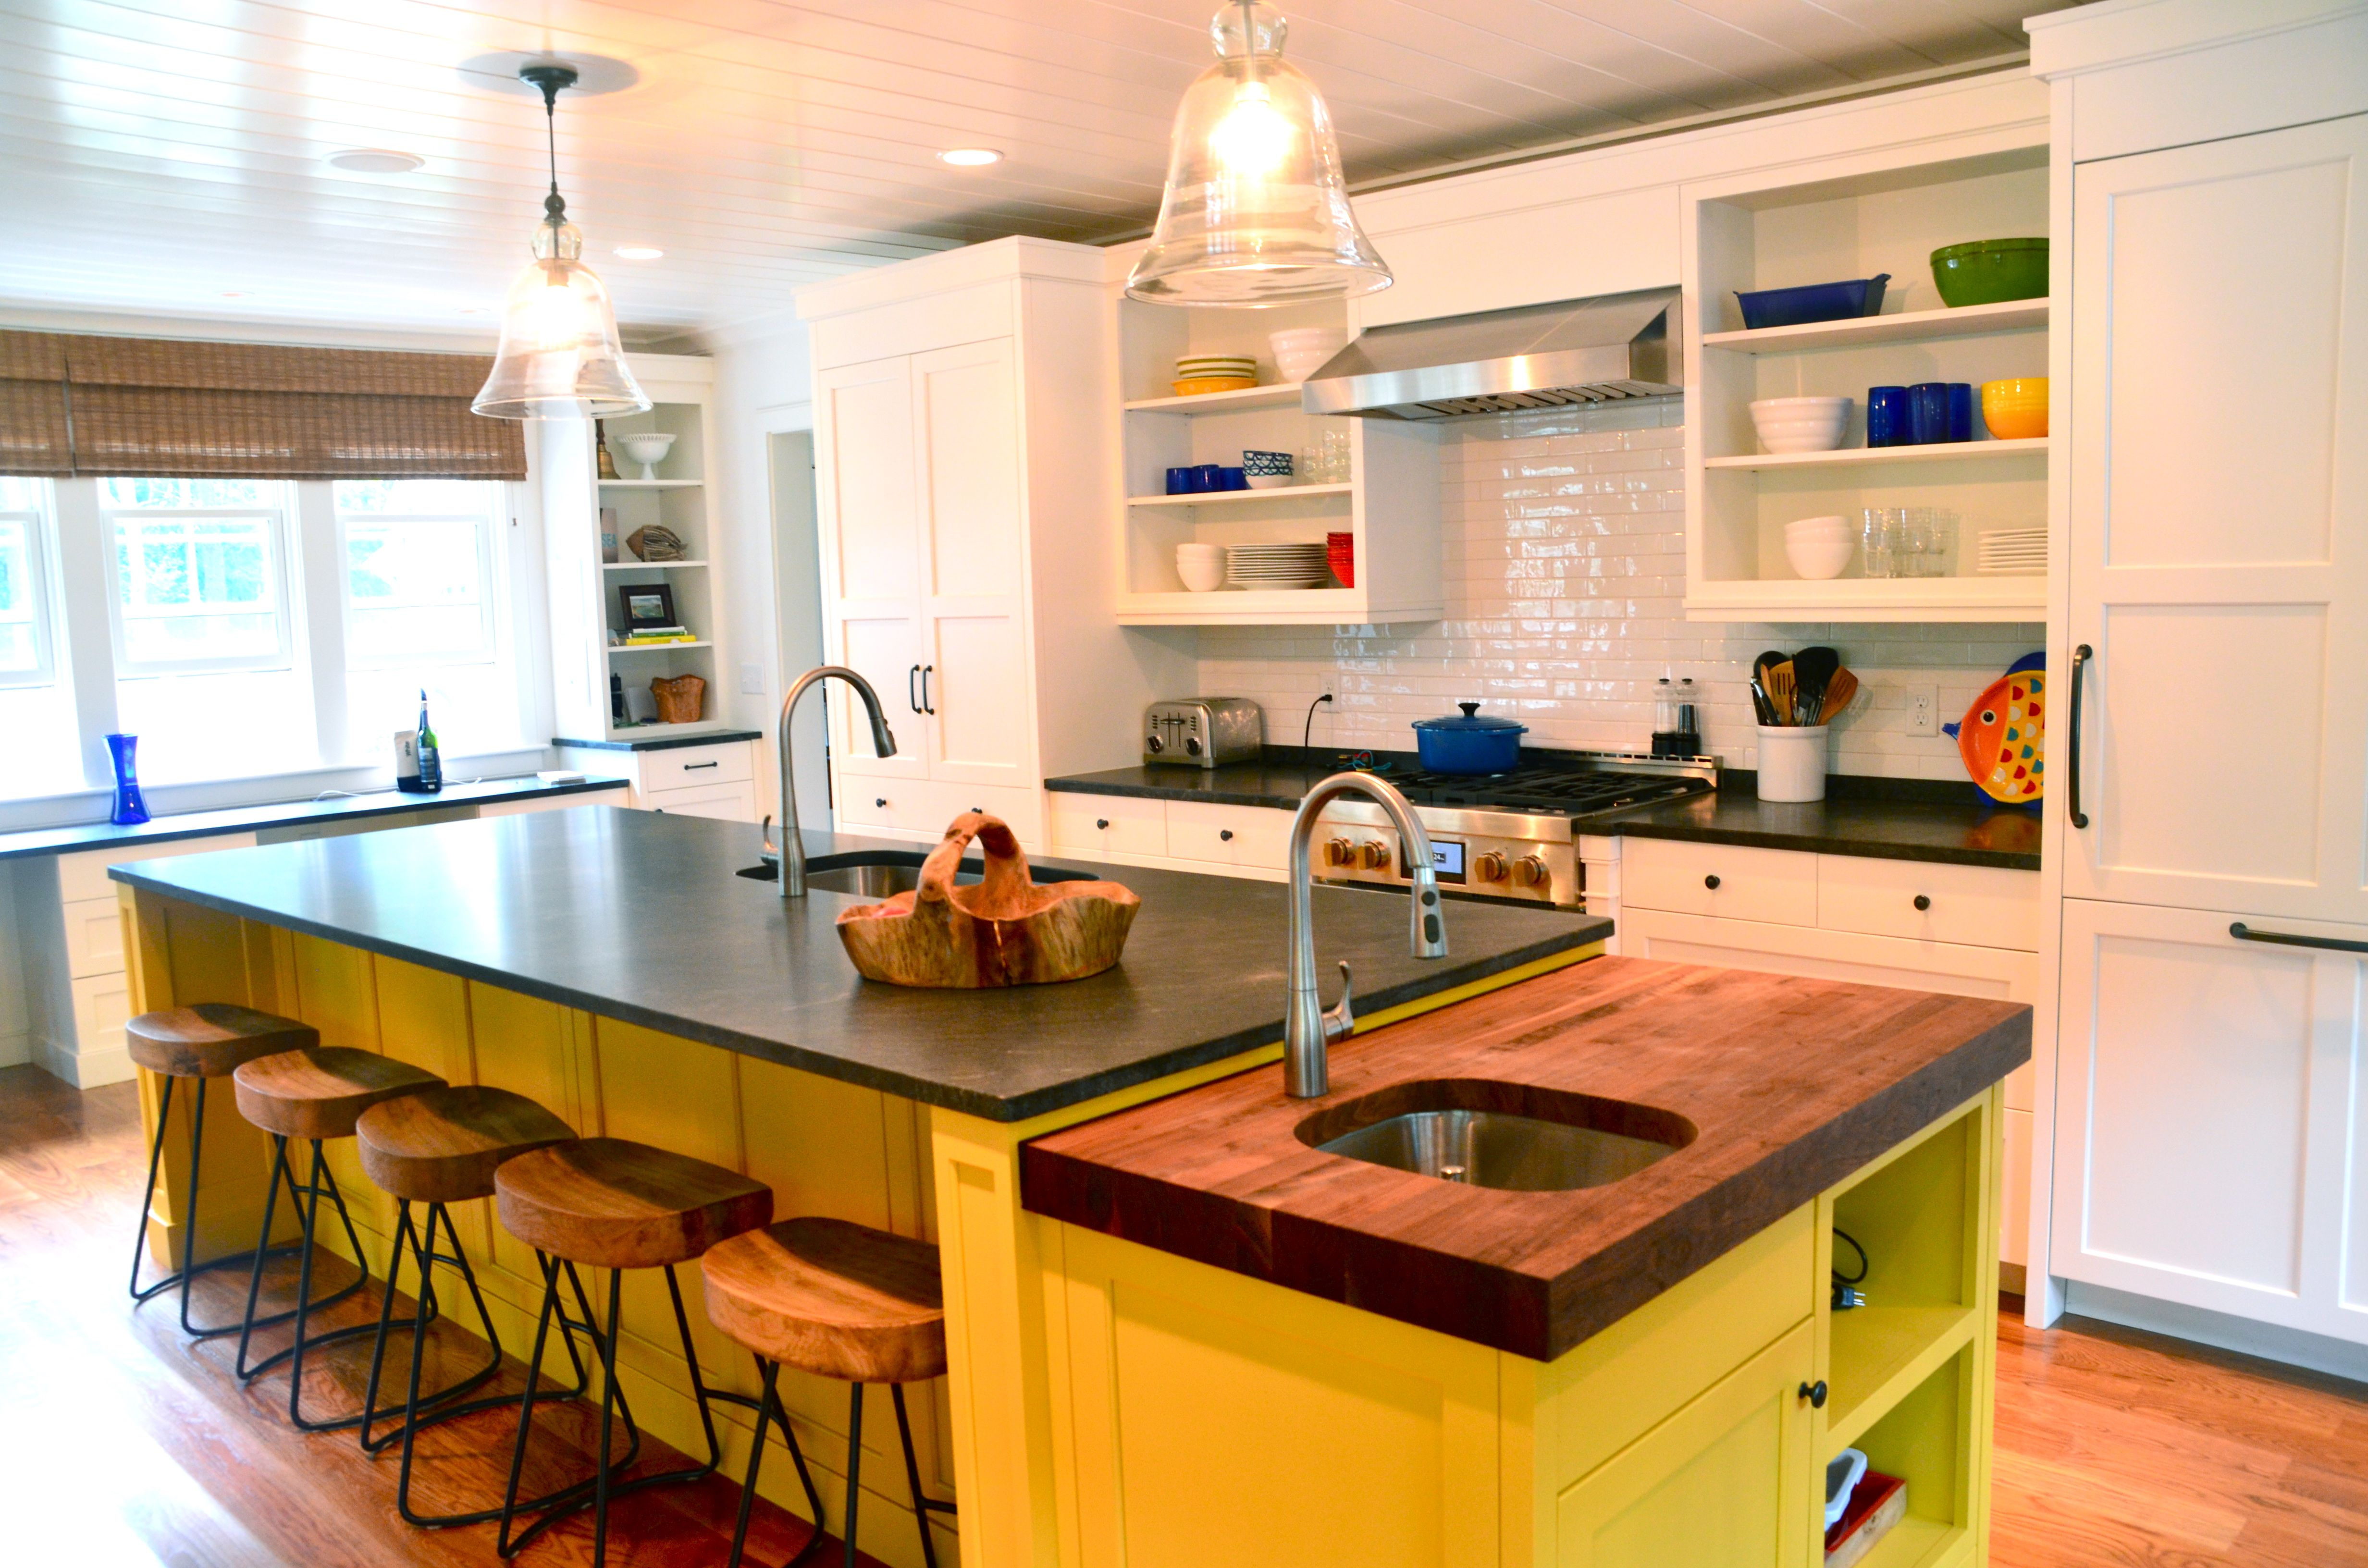 beach house kitchen, colorful kitchen, yellow island, butcher block counter, open shelves, jet mist honed granite countertops, integrated built in refrigerator